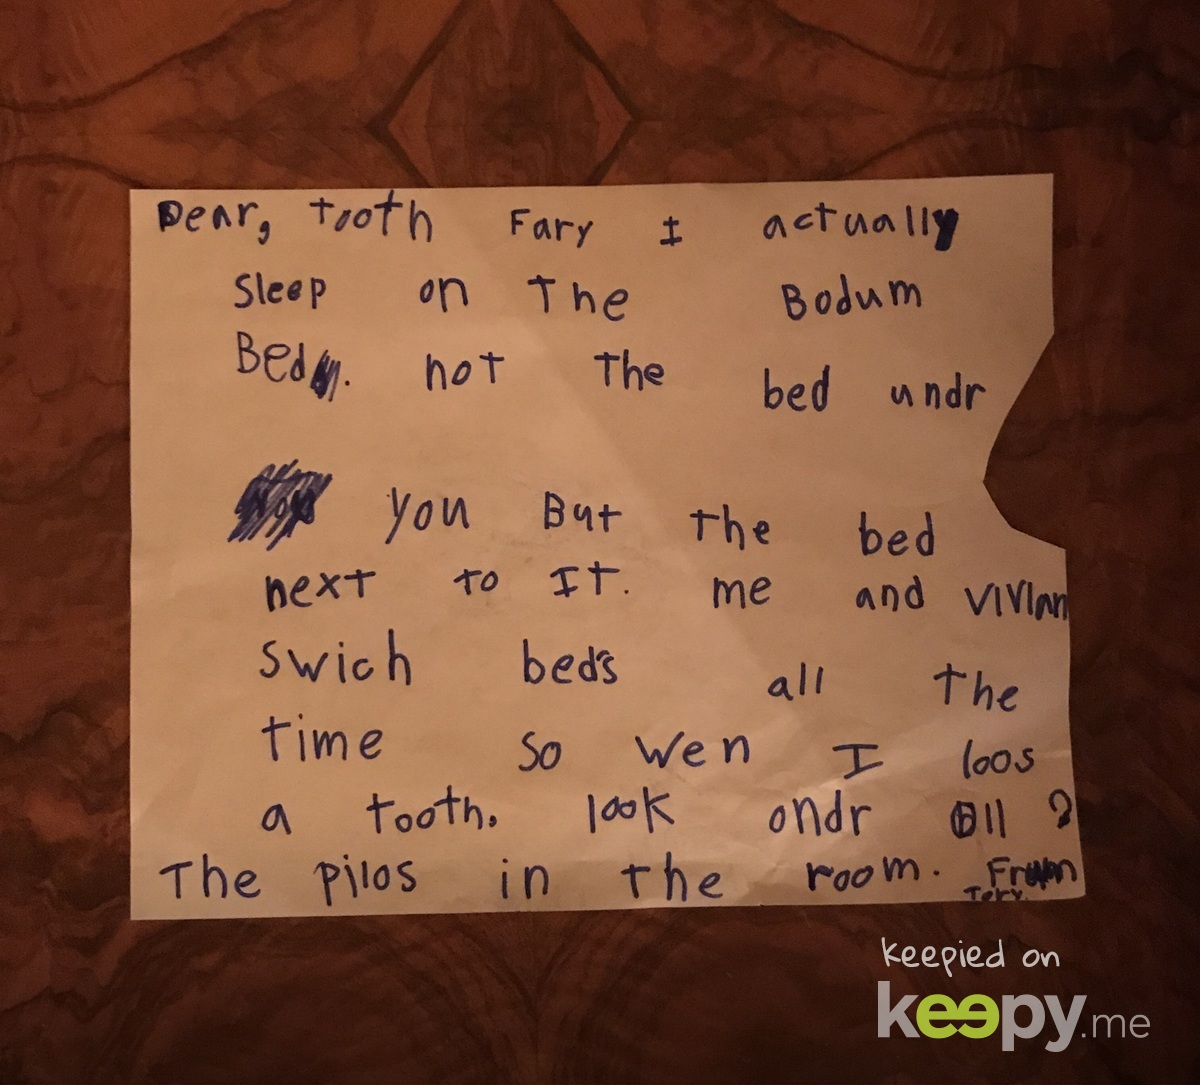 Even the tooth fairy